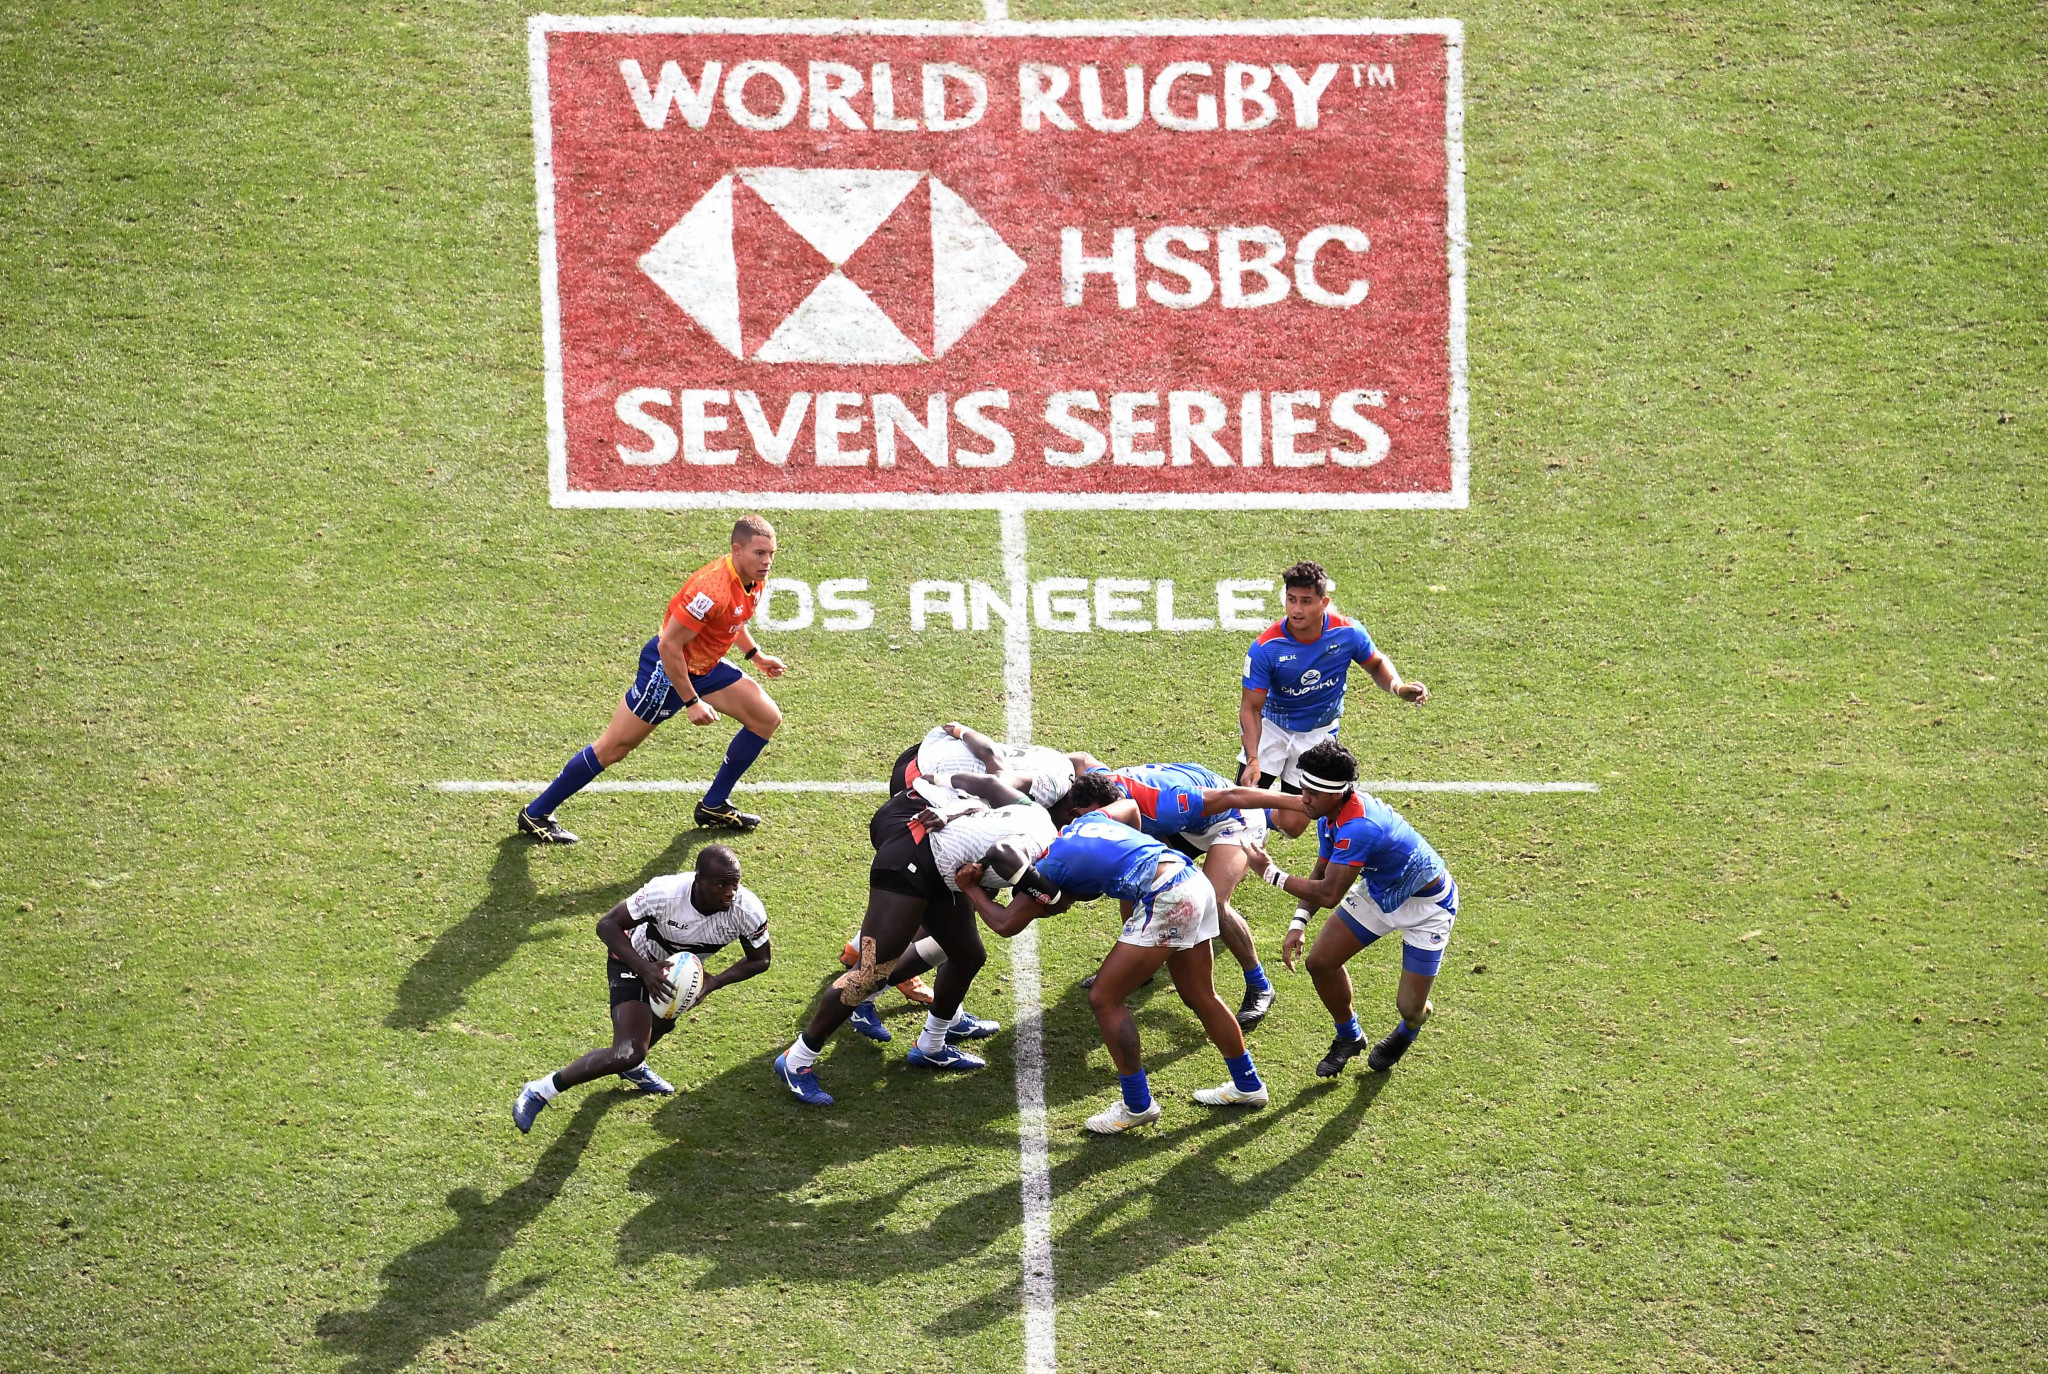 World Rugby Sevens Series 2022 calendar released with 10 rounds scheduled over six months